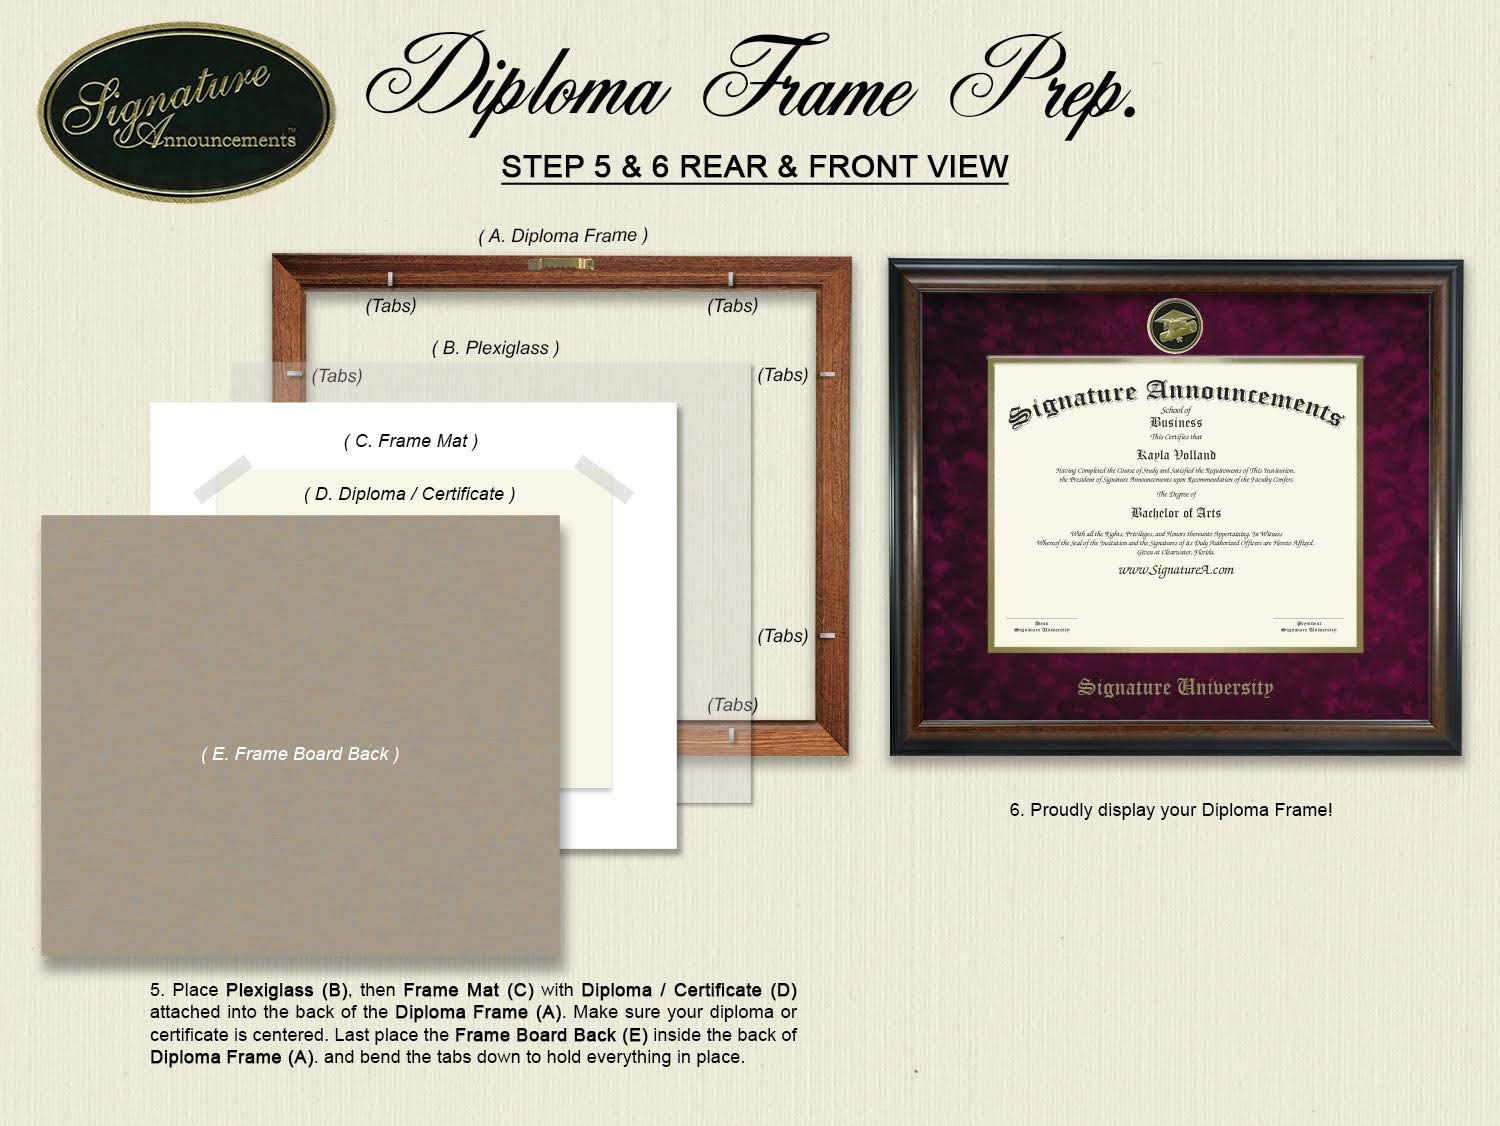 Signature Announcements George-Washington-University Doctorate Sculpted Foil Seal /& Name Graduation Diploma Frame 20 x 20 Matte Mahogany